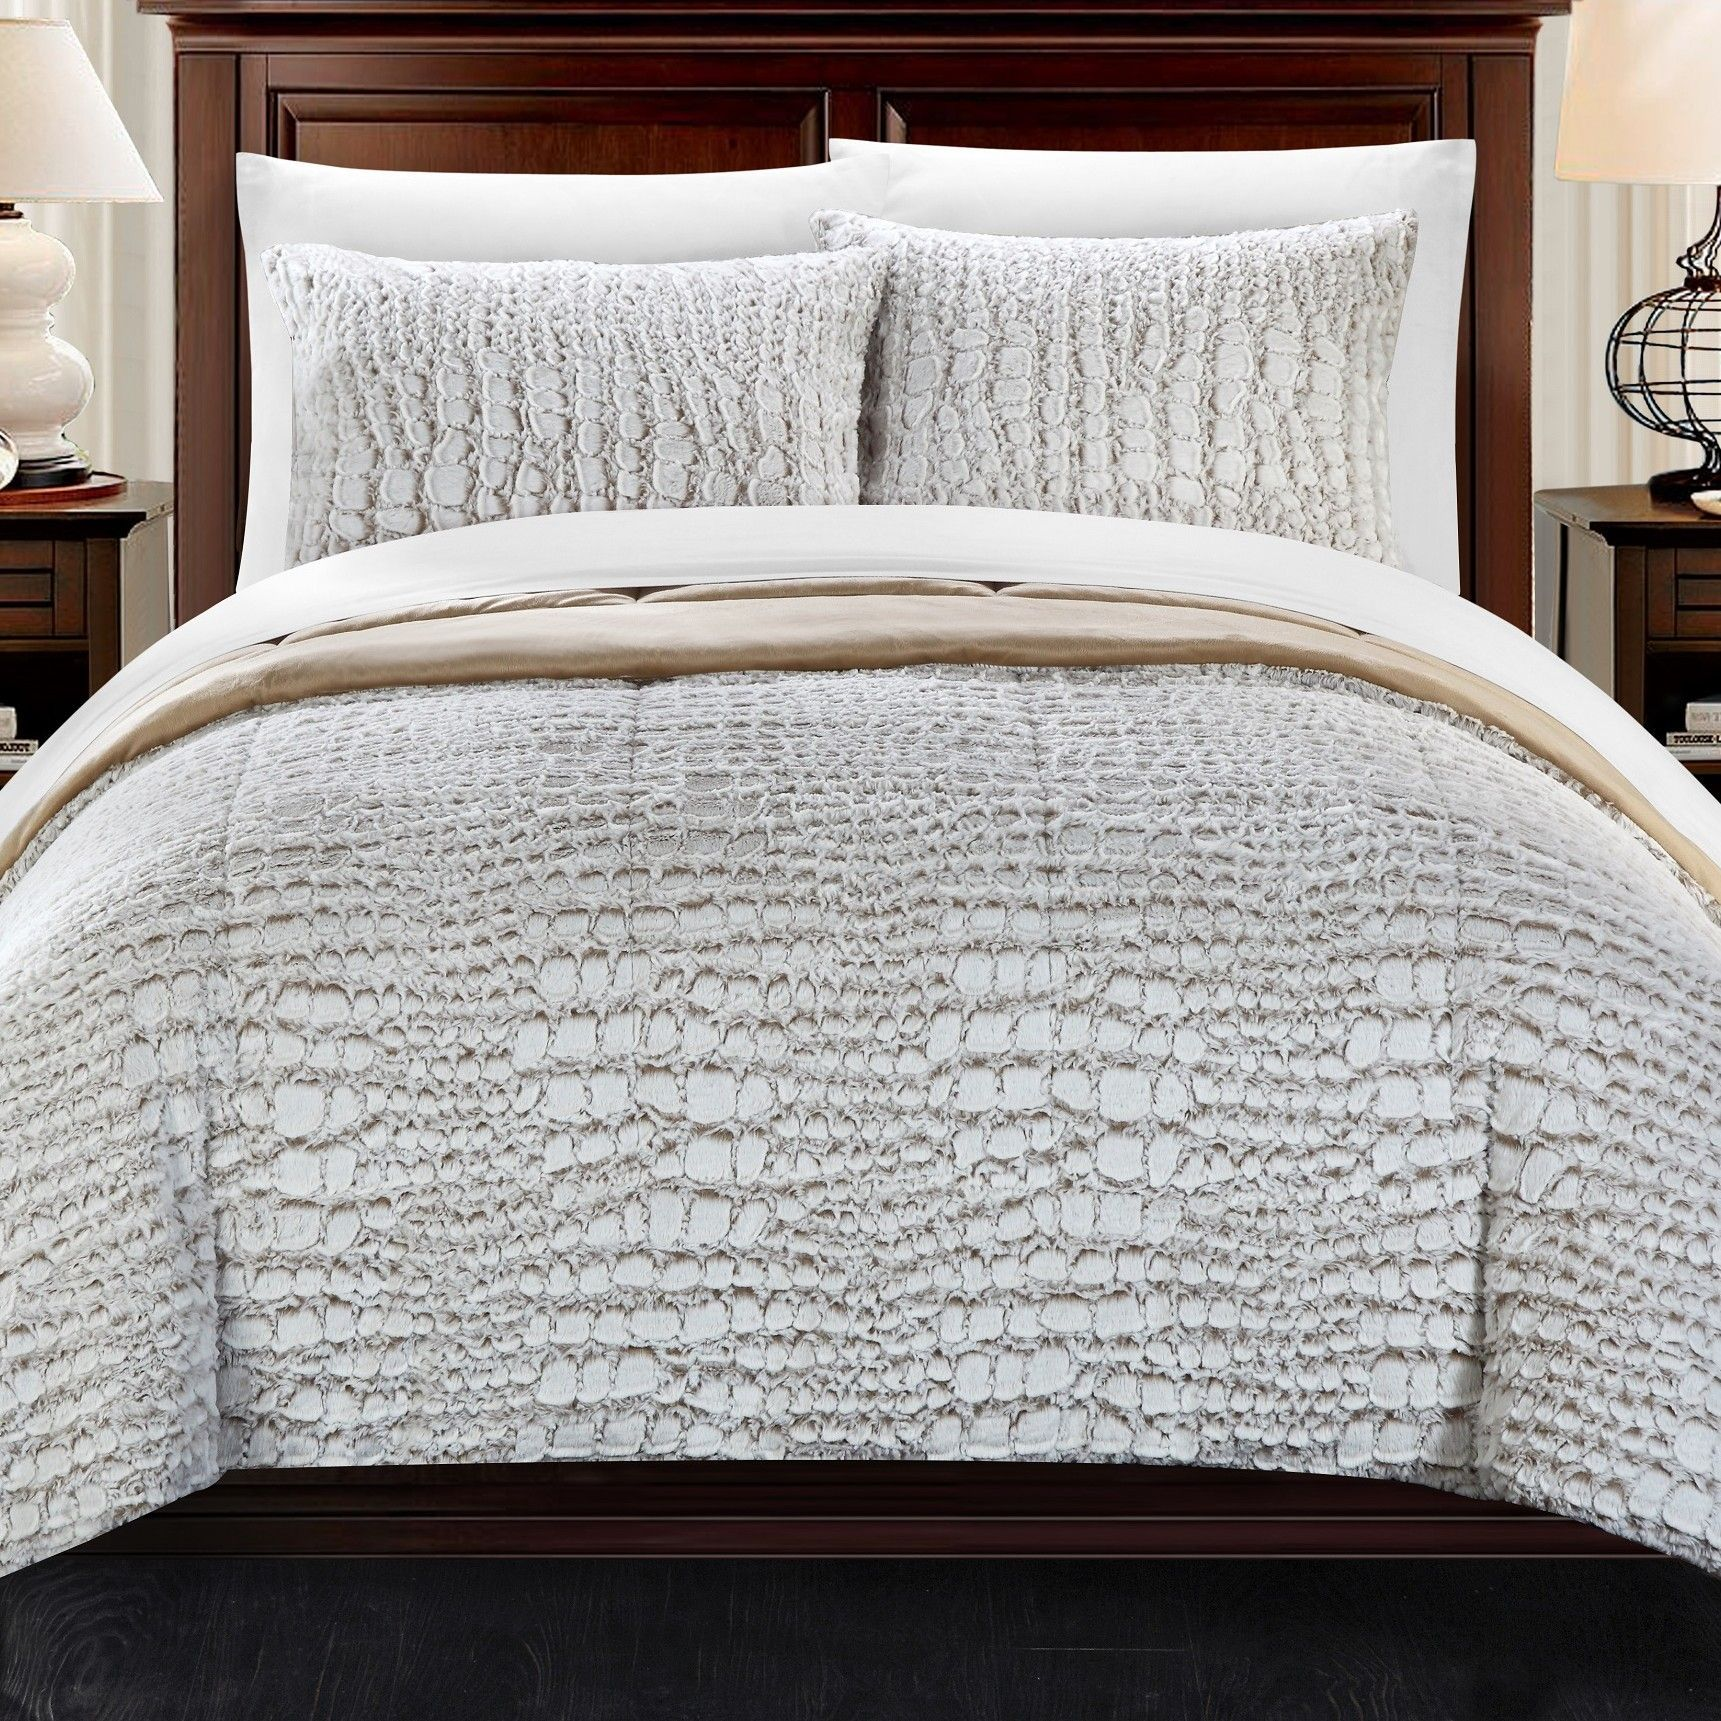 Alligator 3 Piece Queen Comforter Set